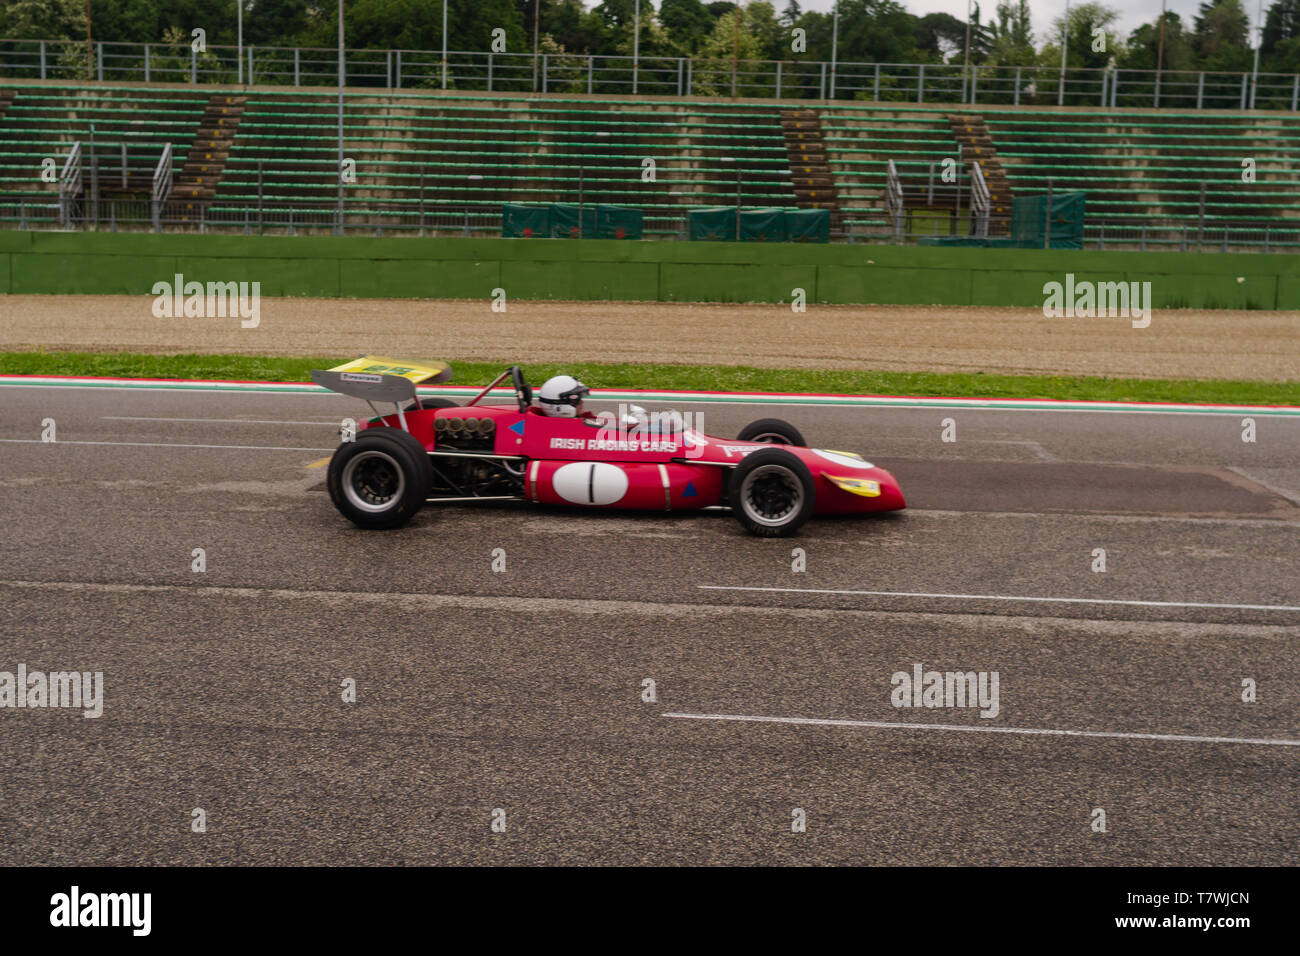 an early day formula one car is flying fast on the main straight Stock Photo